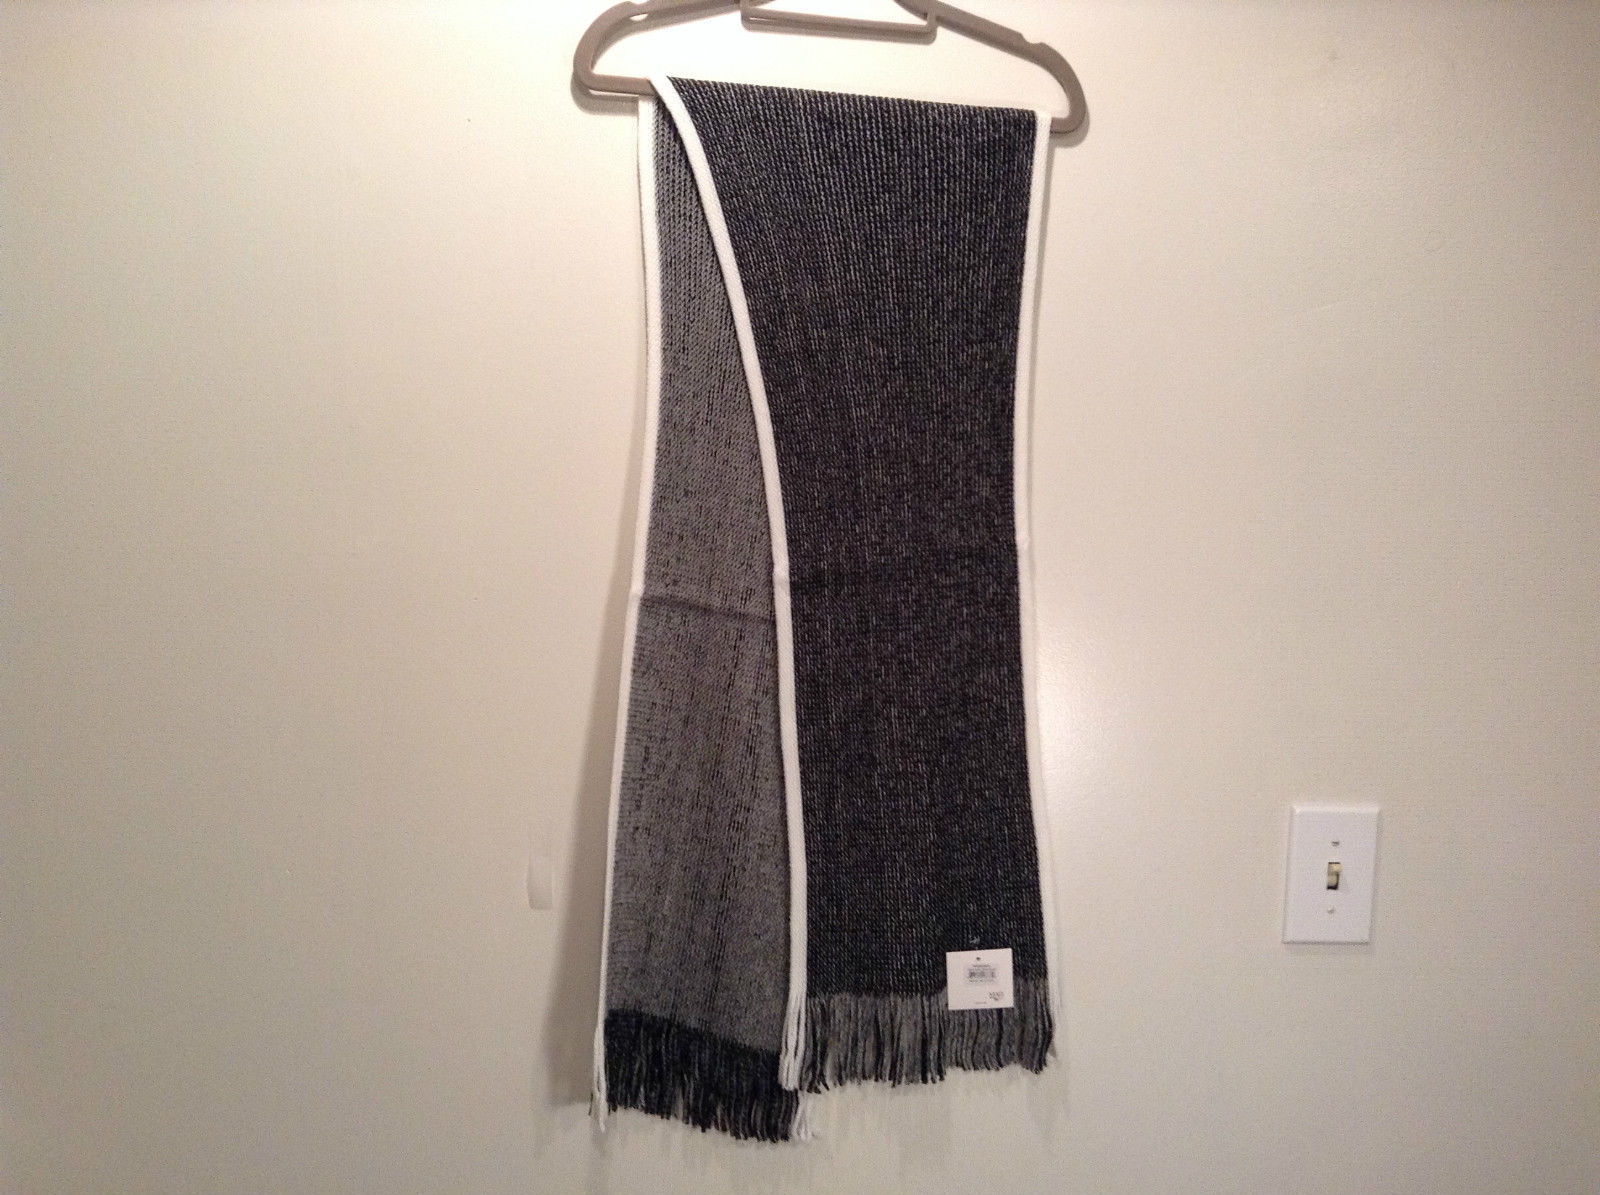 Primary image for Dark Gray Knitted Reversible Scarf One Size NEW WITH TAGS